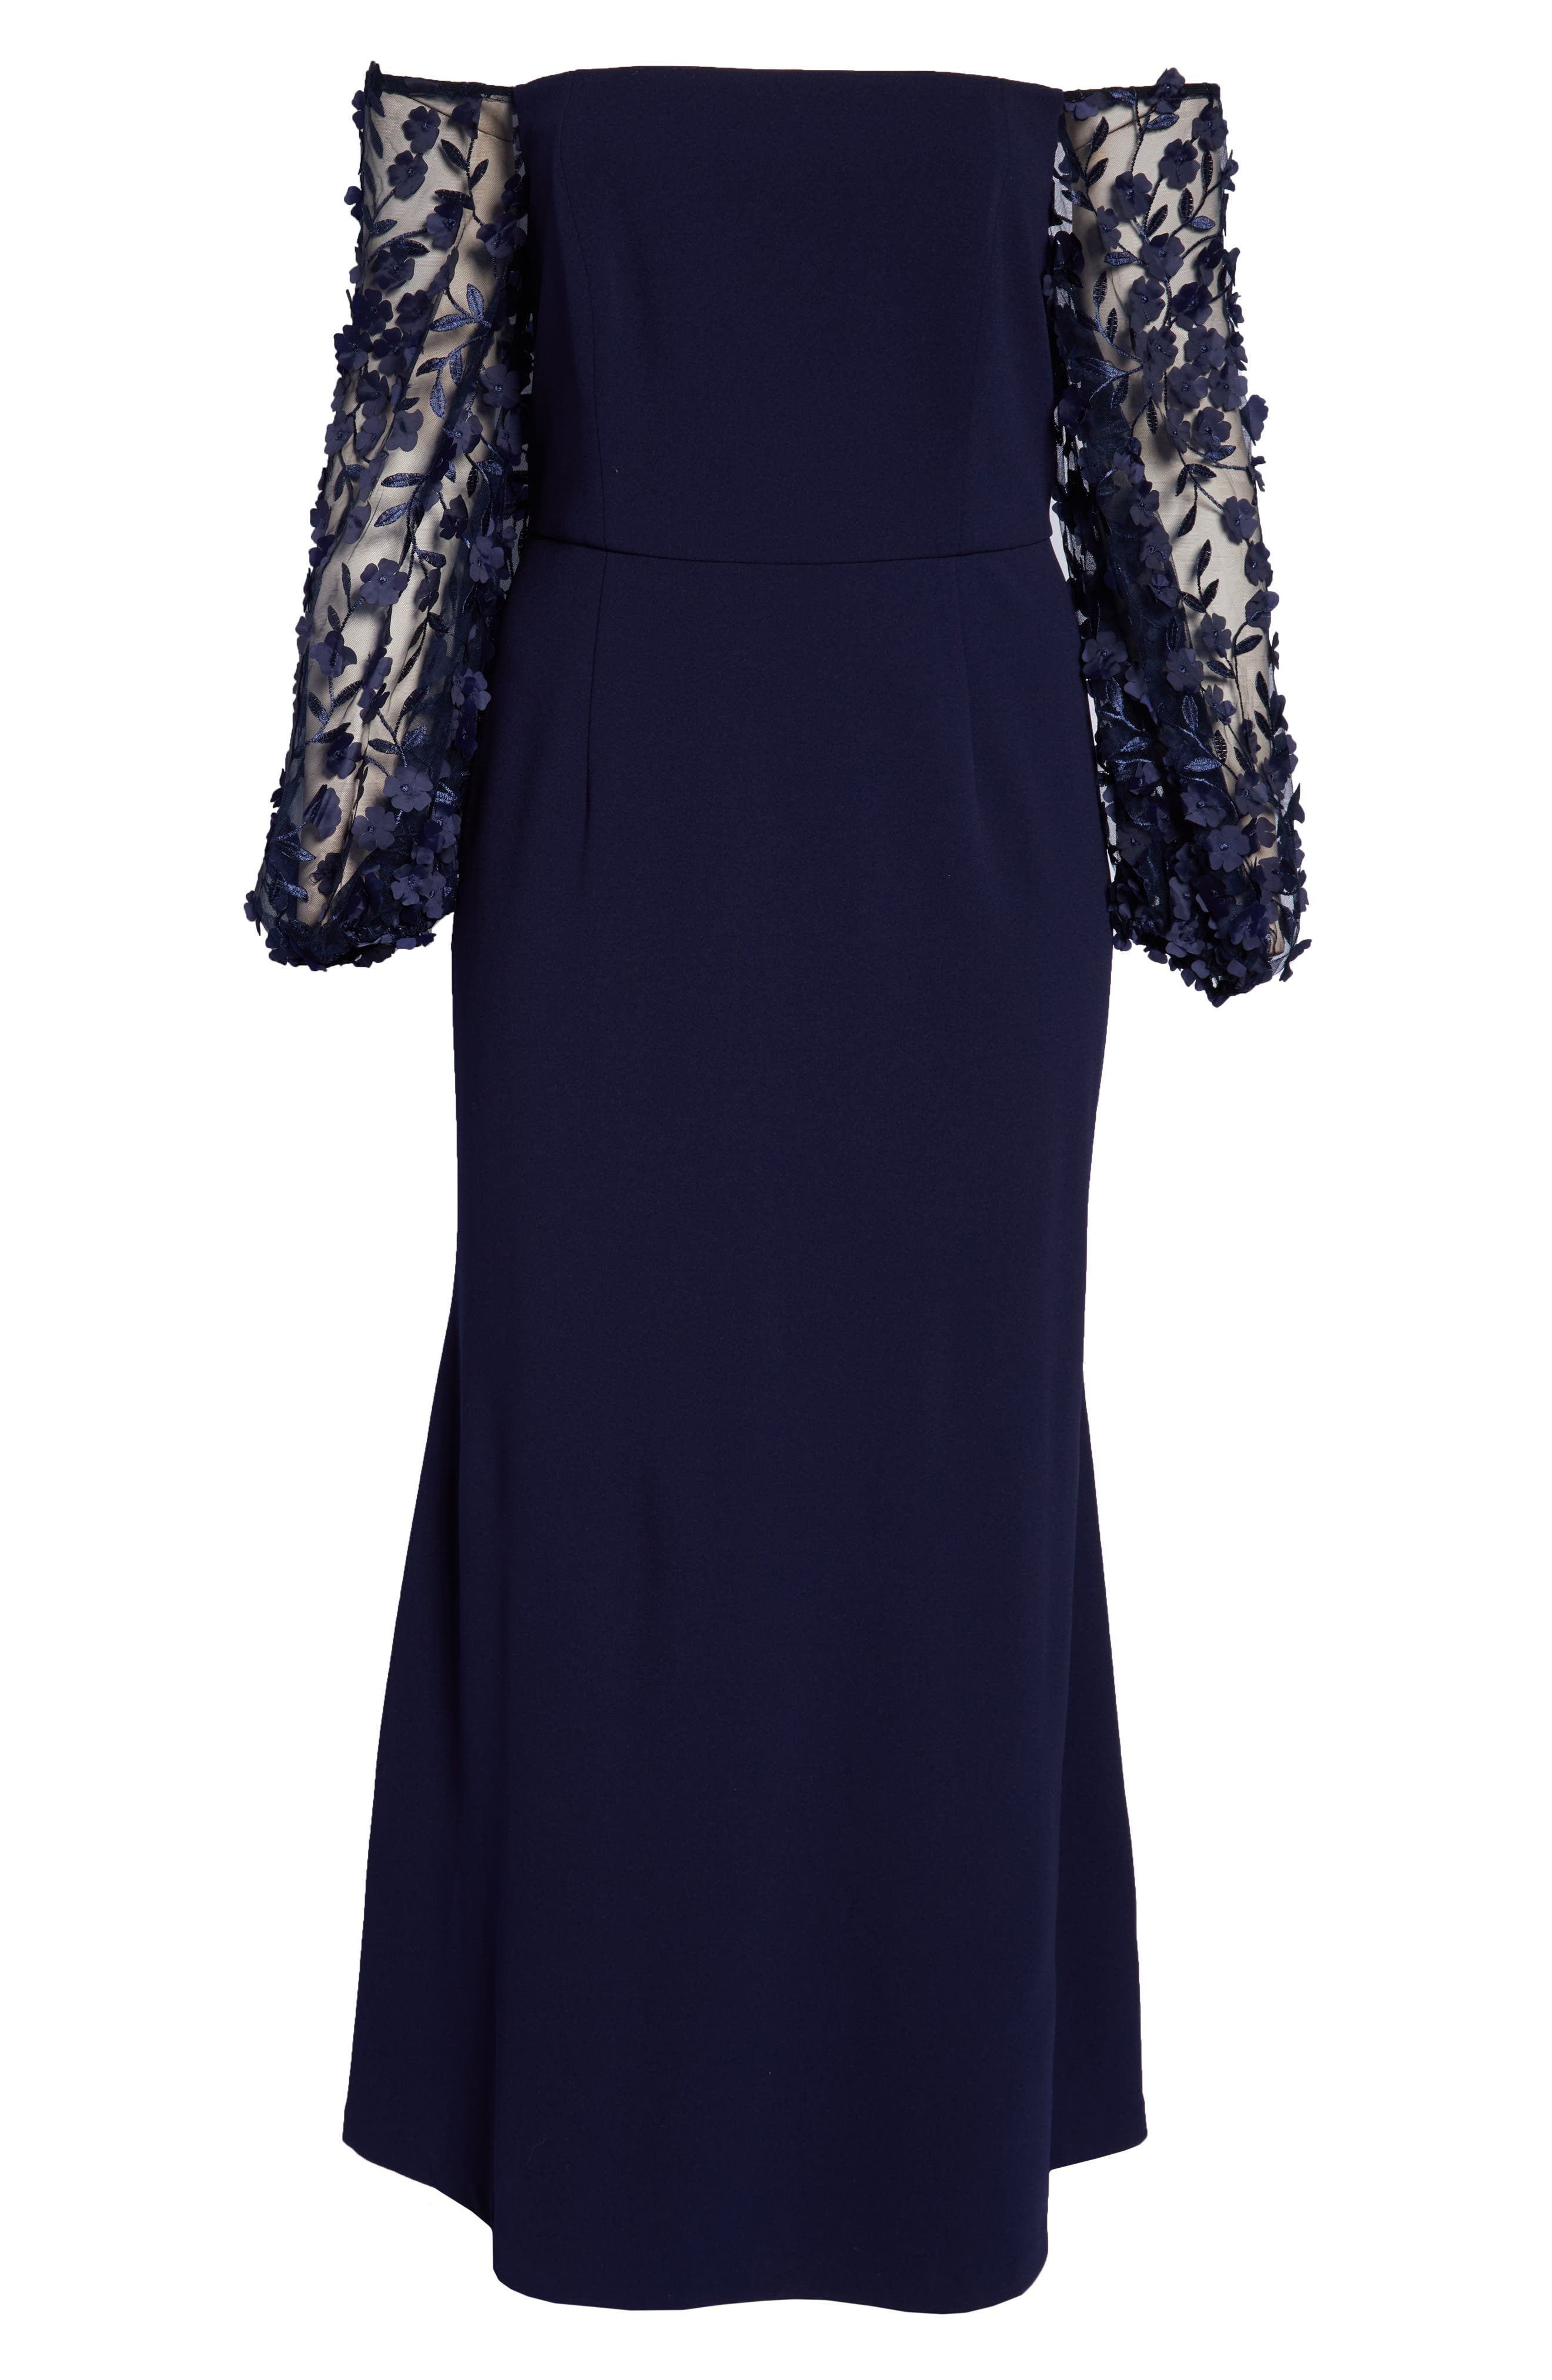 ELIZA J, Off the Shoulder 3D Floral Sleeve Scuba Crepe Evening Dress, Alternate thumbnail 6, color, NAVY